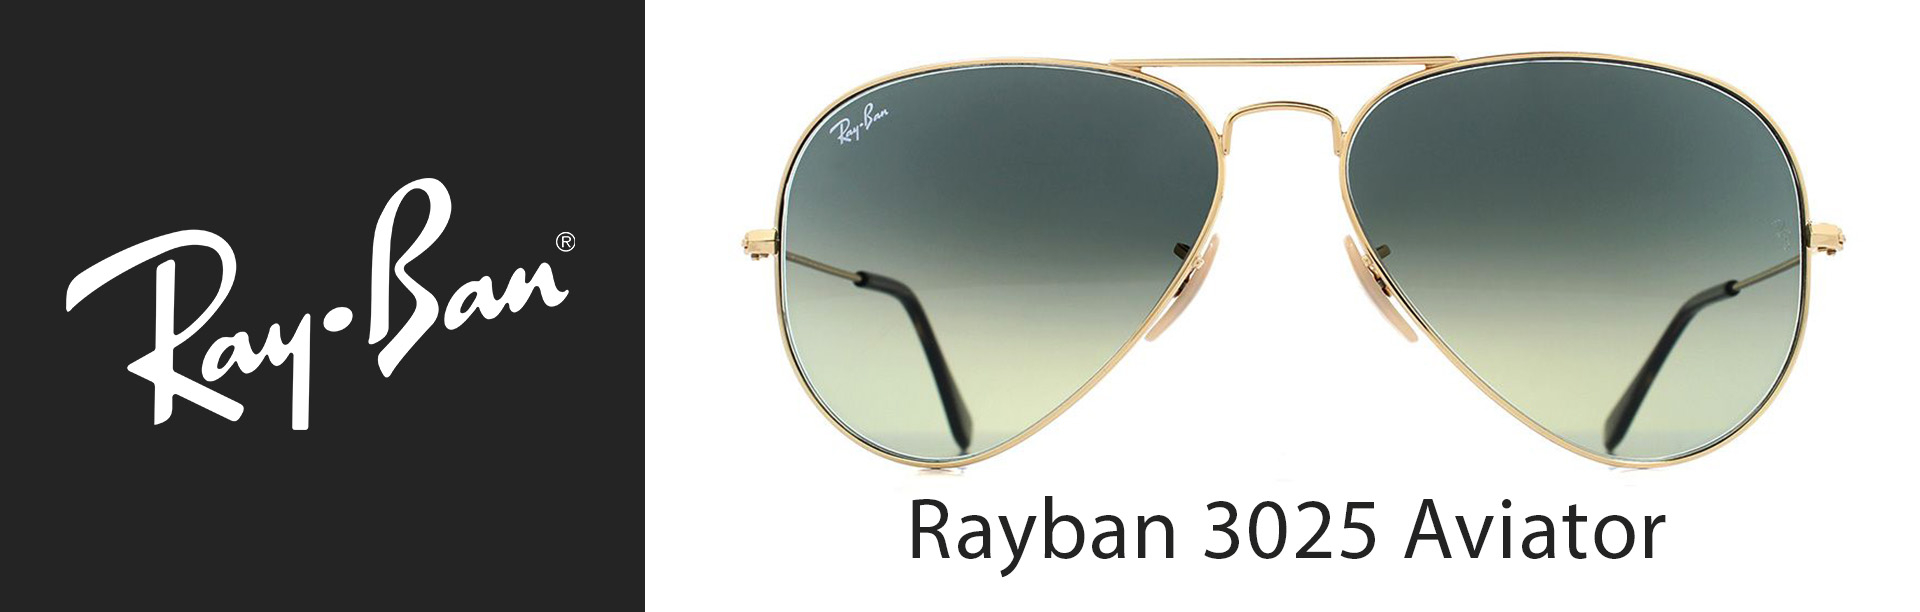 reviews ray ban sunglasses